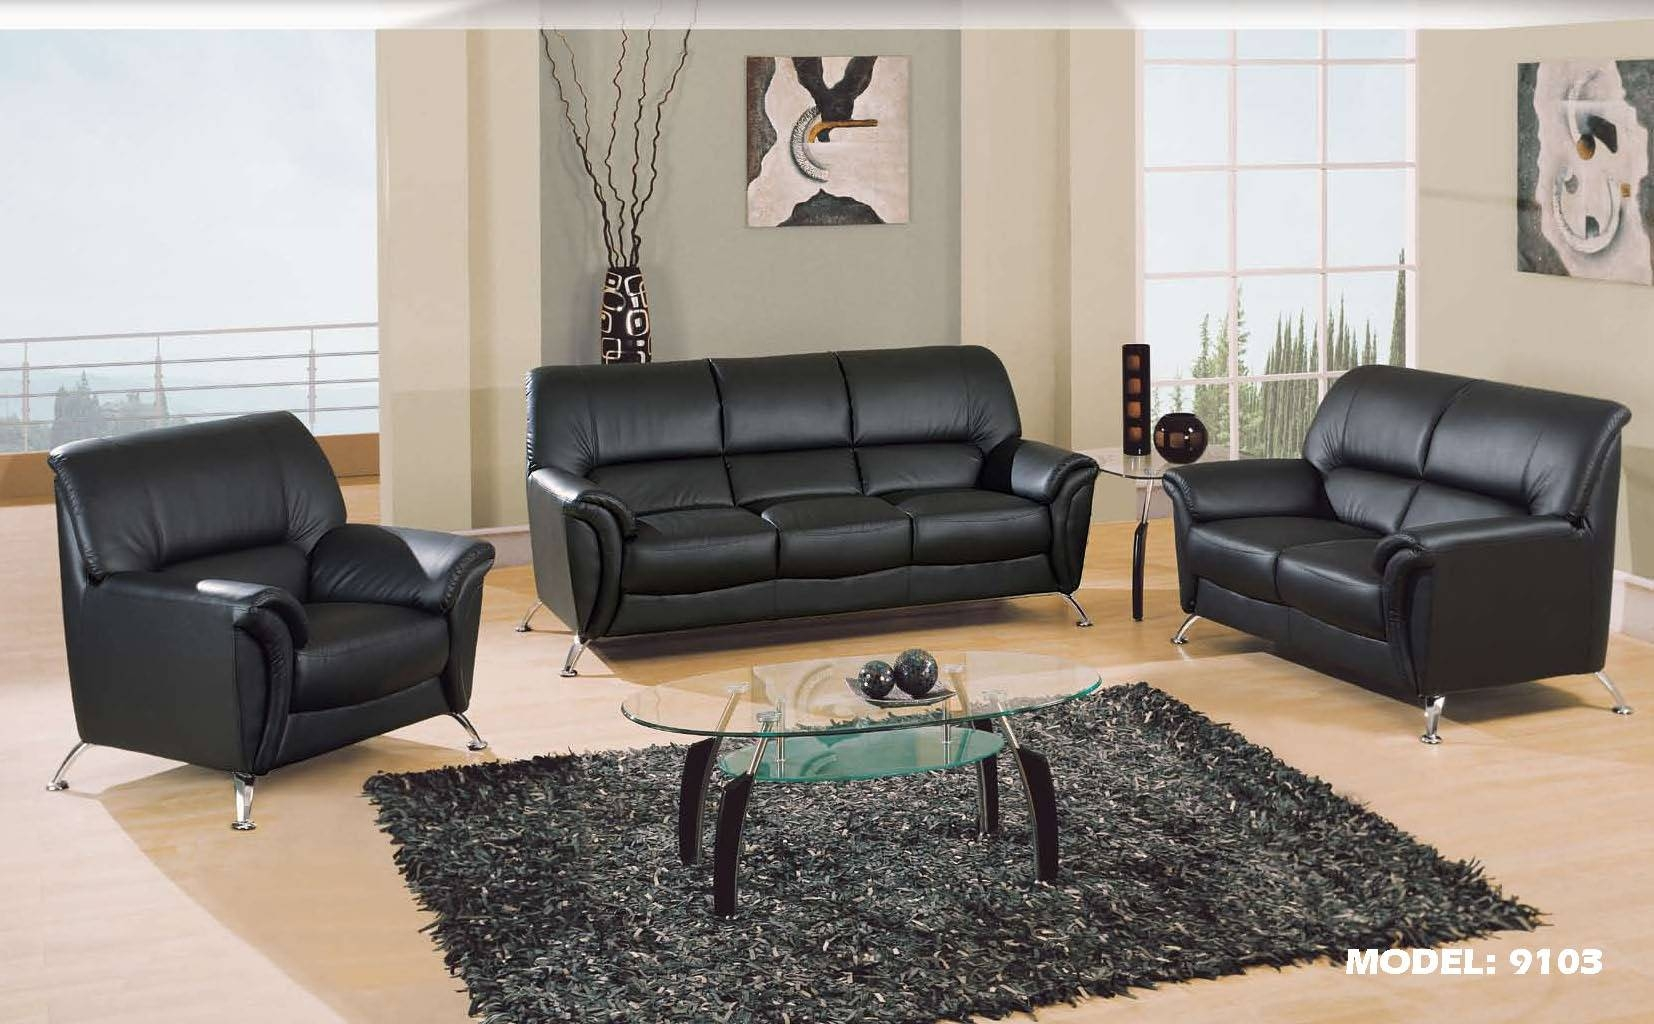 Sofas Center : Emejing Black Leather Couch Set Contemporary With Contemporary Black Leather Sofas (View 23 of 30)